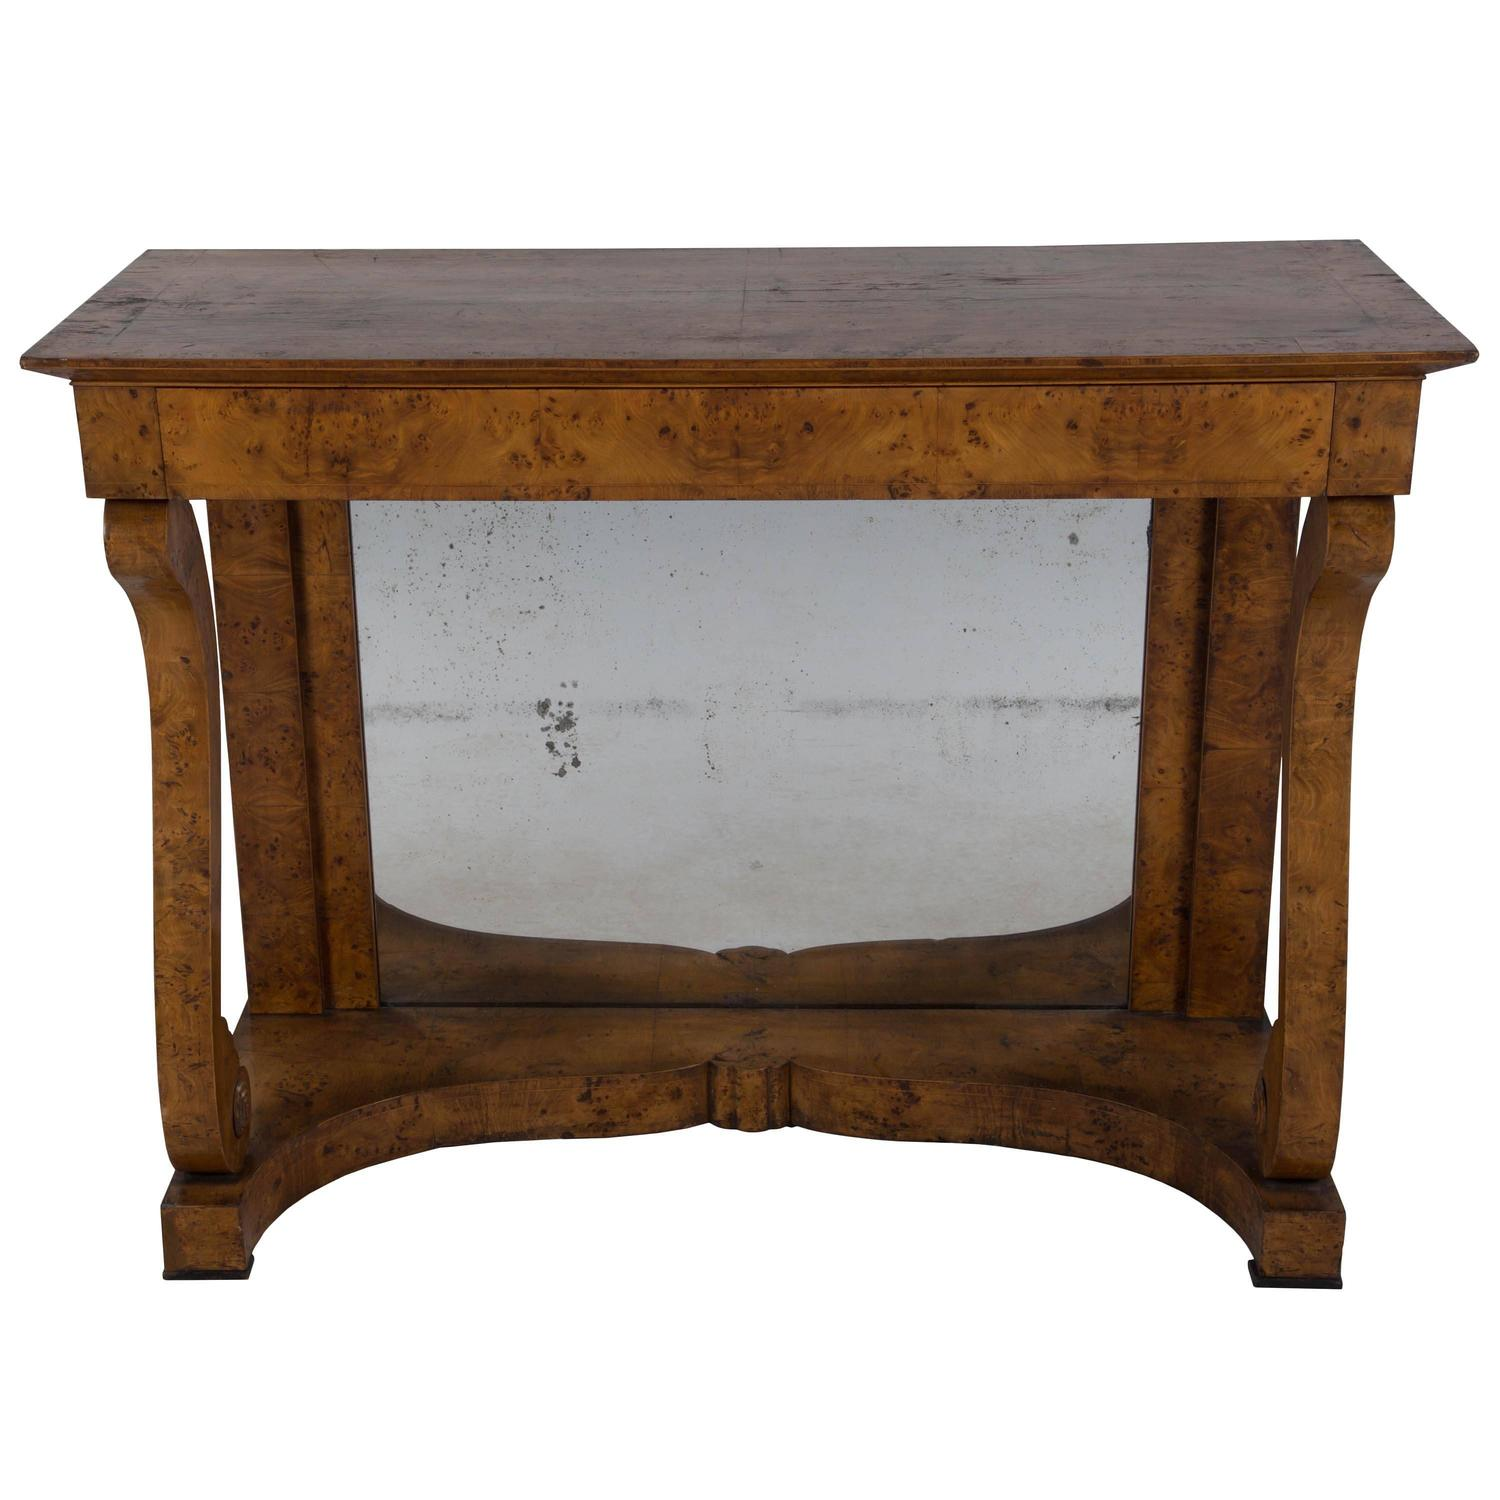 Mid 19th century yew wood console at 1stdibs for Yew sofa table